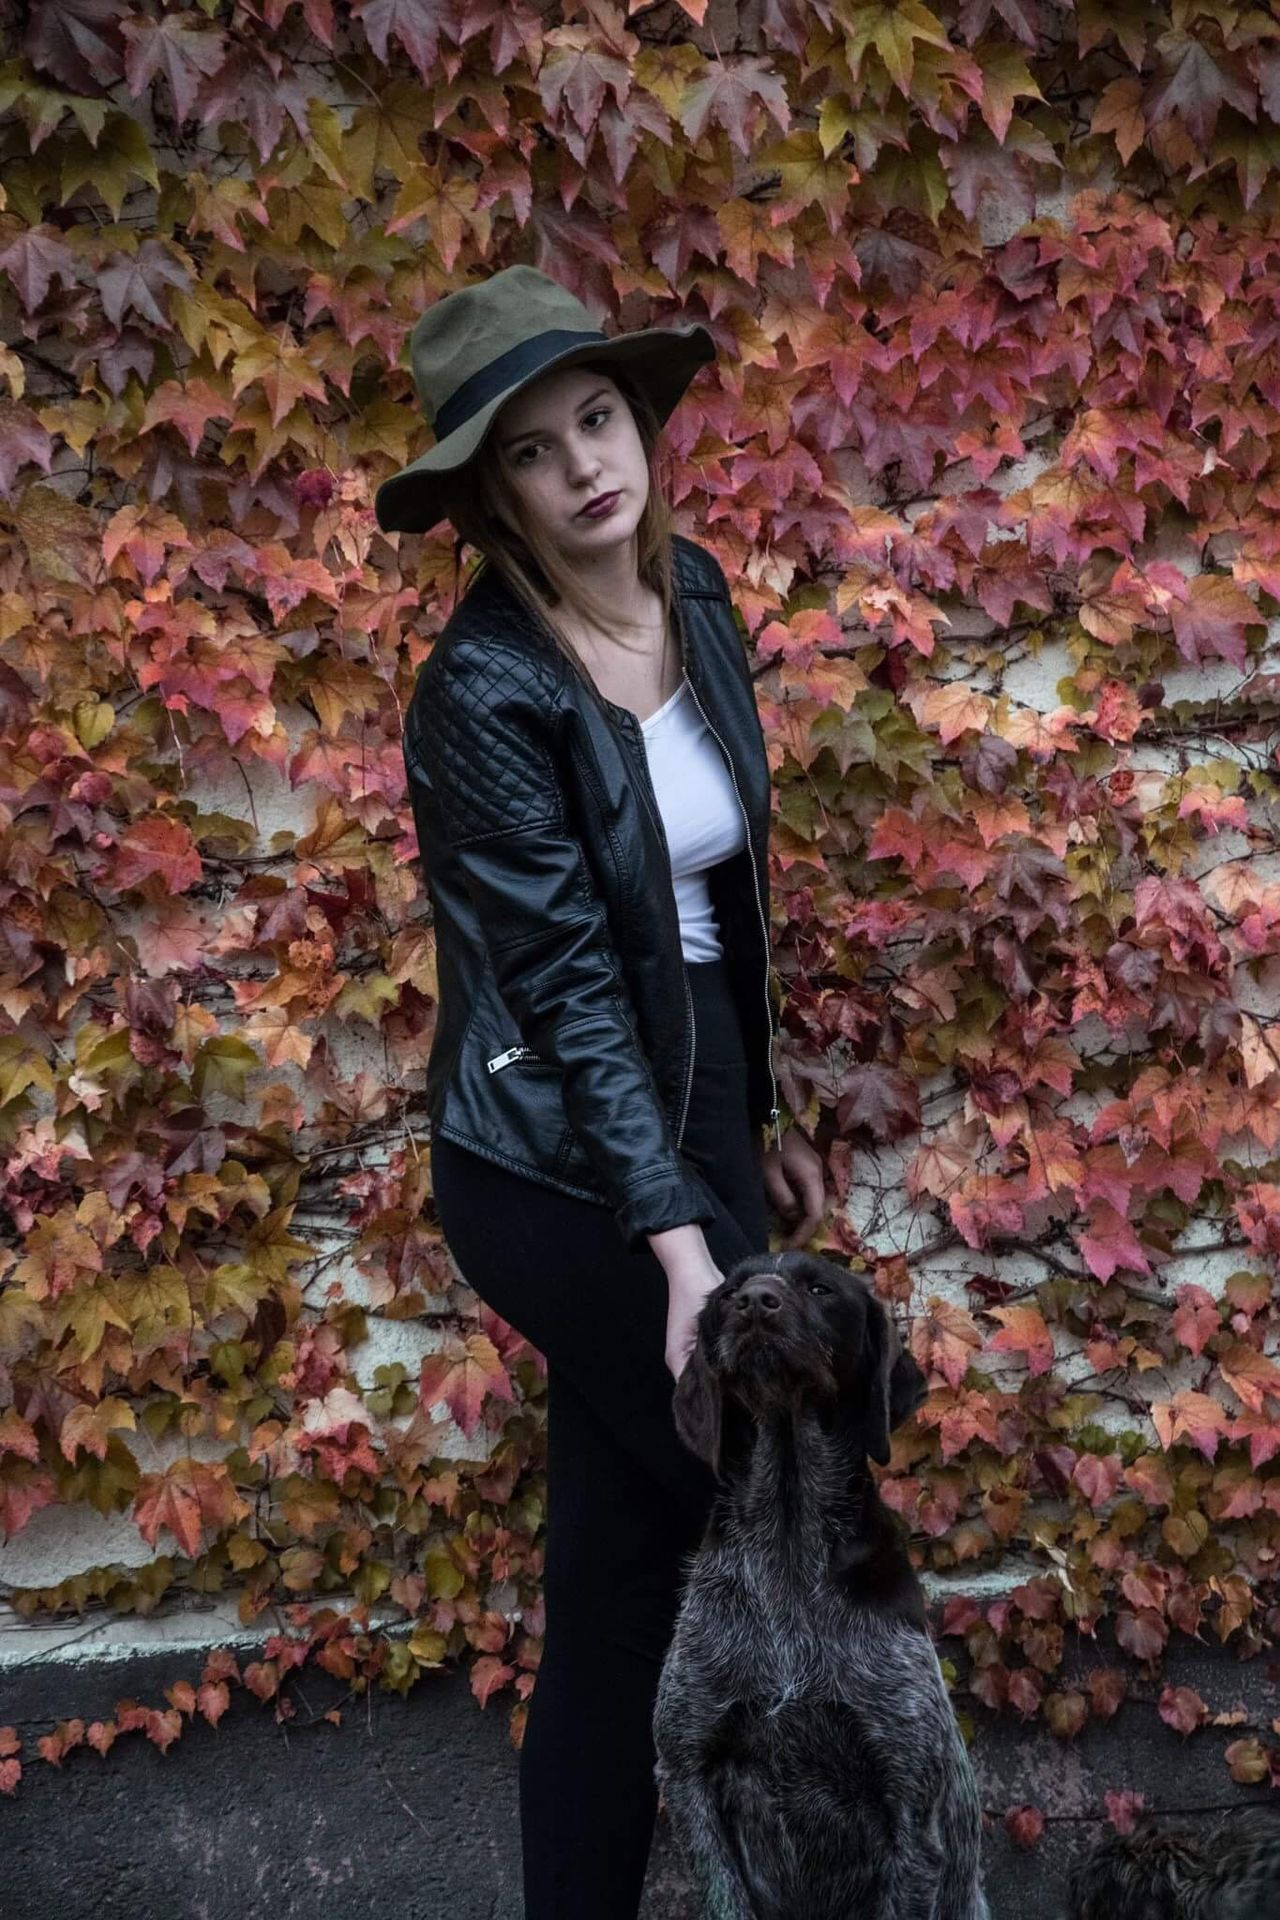 Sister & puppy Dog One Person Full Length Standing Brick Wall Pets Real People Overcoat One Animal Leaf Leisure Activity Young Adult Young Women Outdoors Day One Woman Only Mammal Adults Only Adult